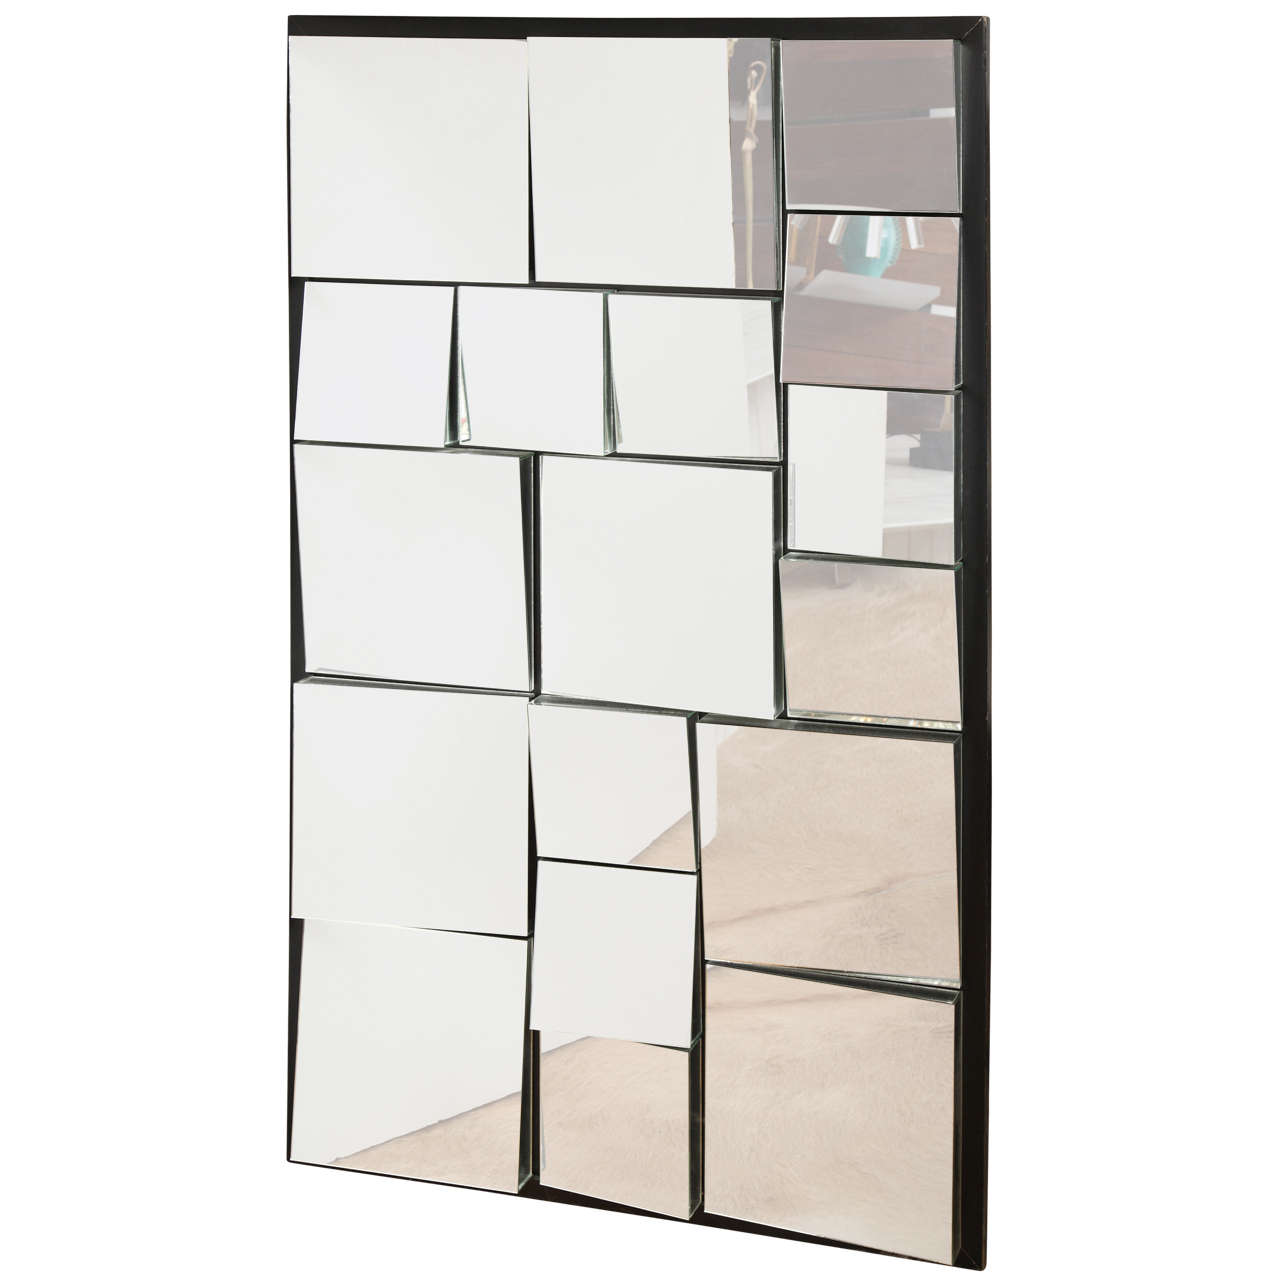 Large mirror by neil small at 1stdibs for Large floor length mirrors for sale